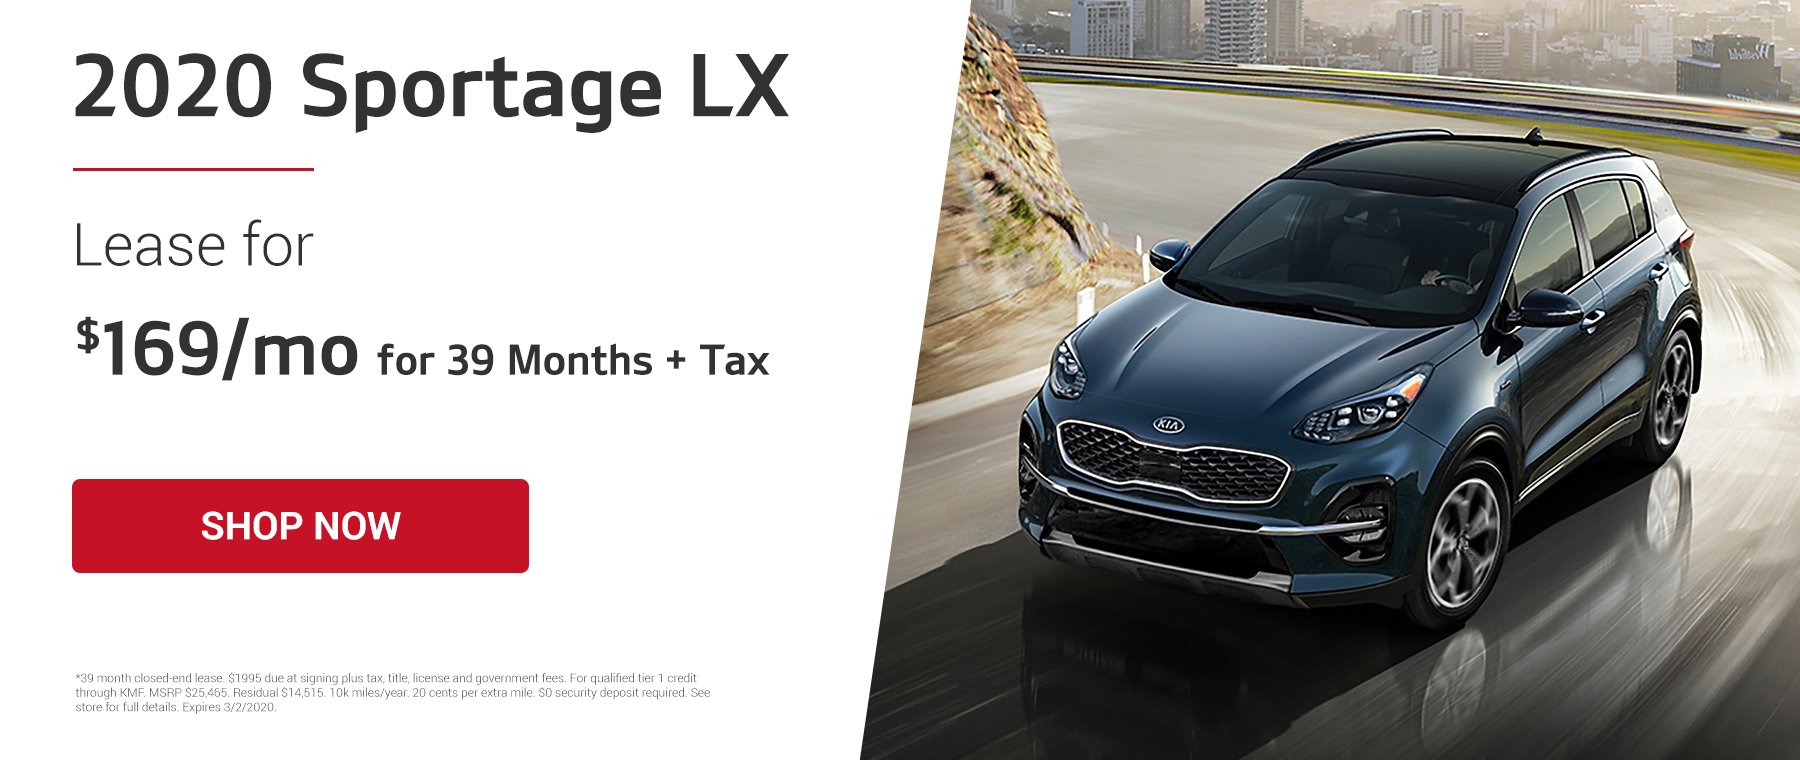 Sportage Lease Offer